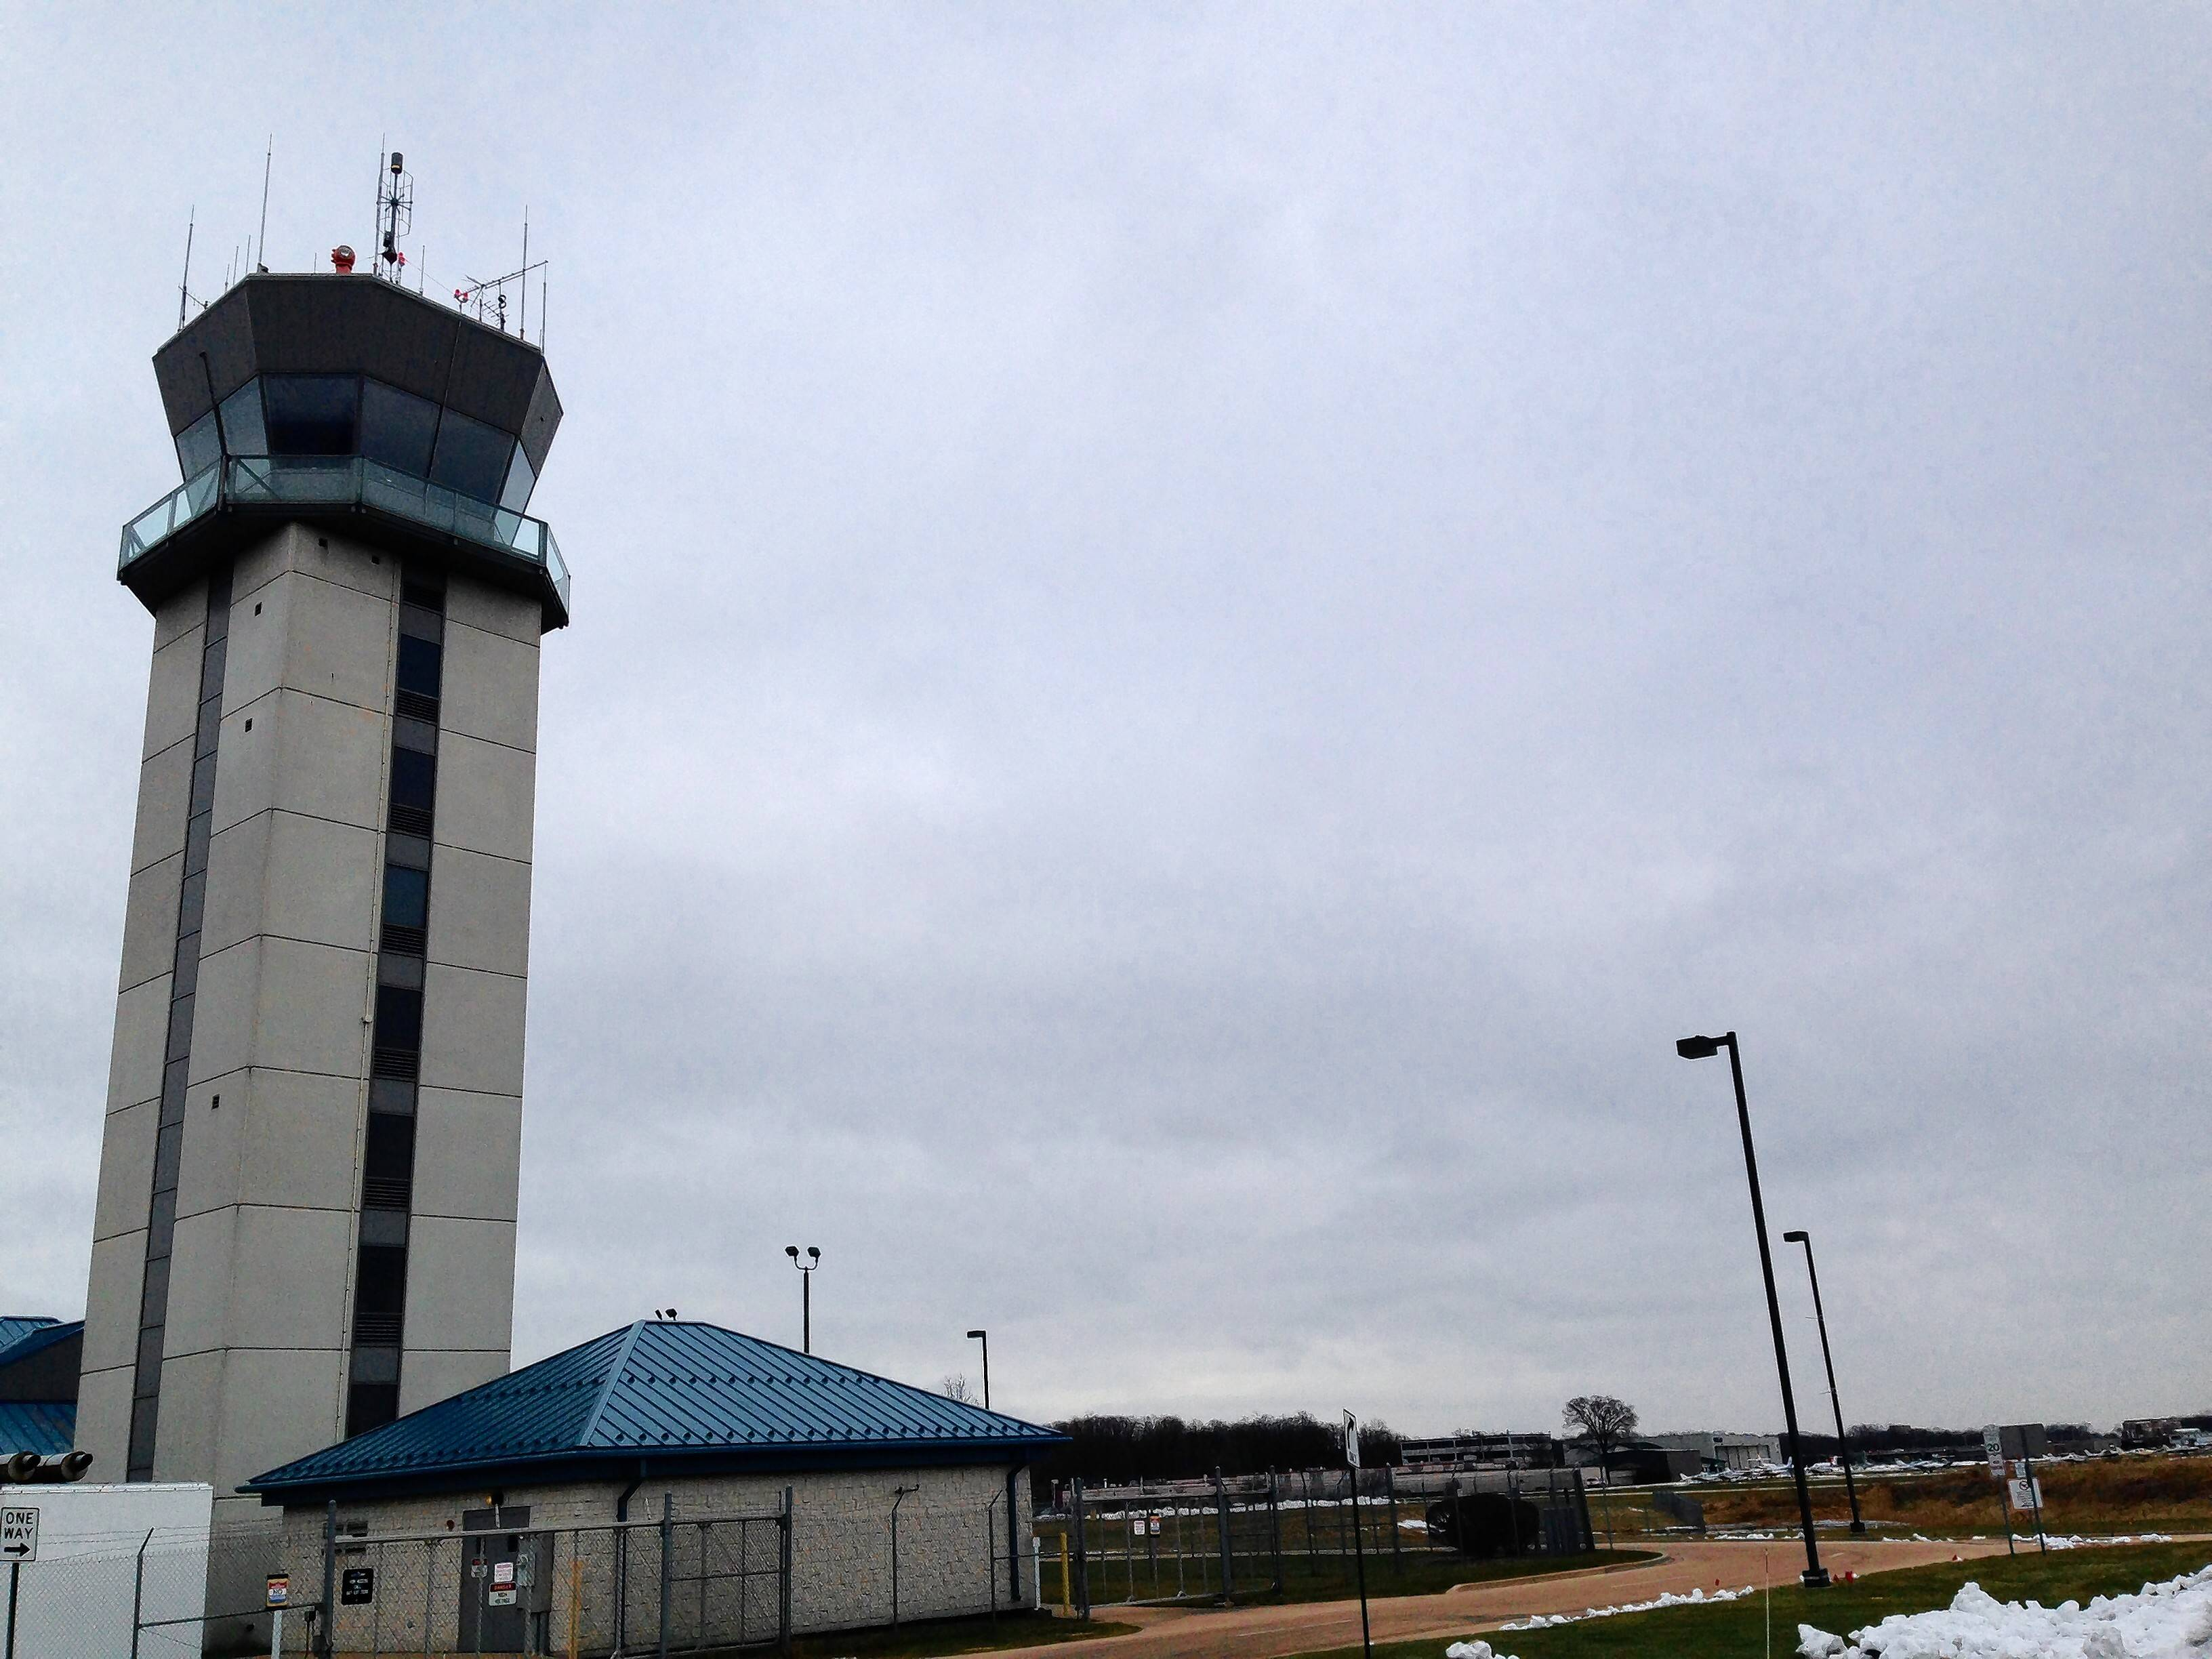 This is the control tower at Chicago Executive Airport. As the airport continues to work on an updated advisory master plan that could include a longer main runway, the idea is drawing concern from some residents in the two towns that own the facility.